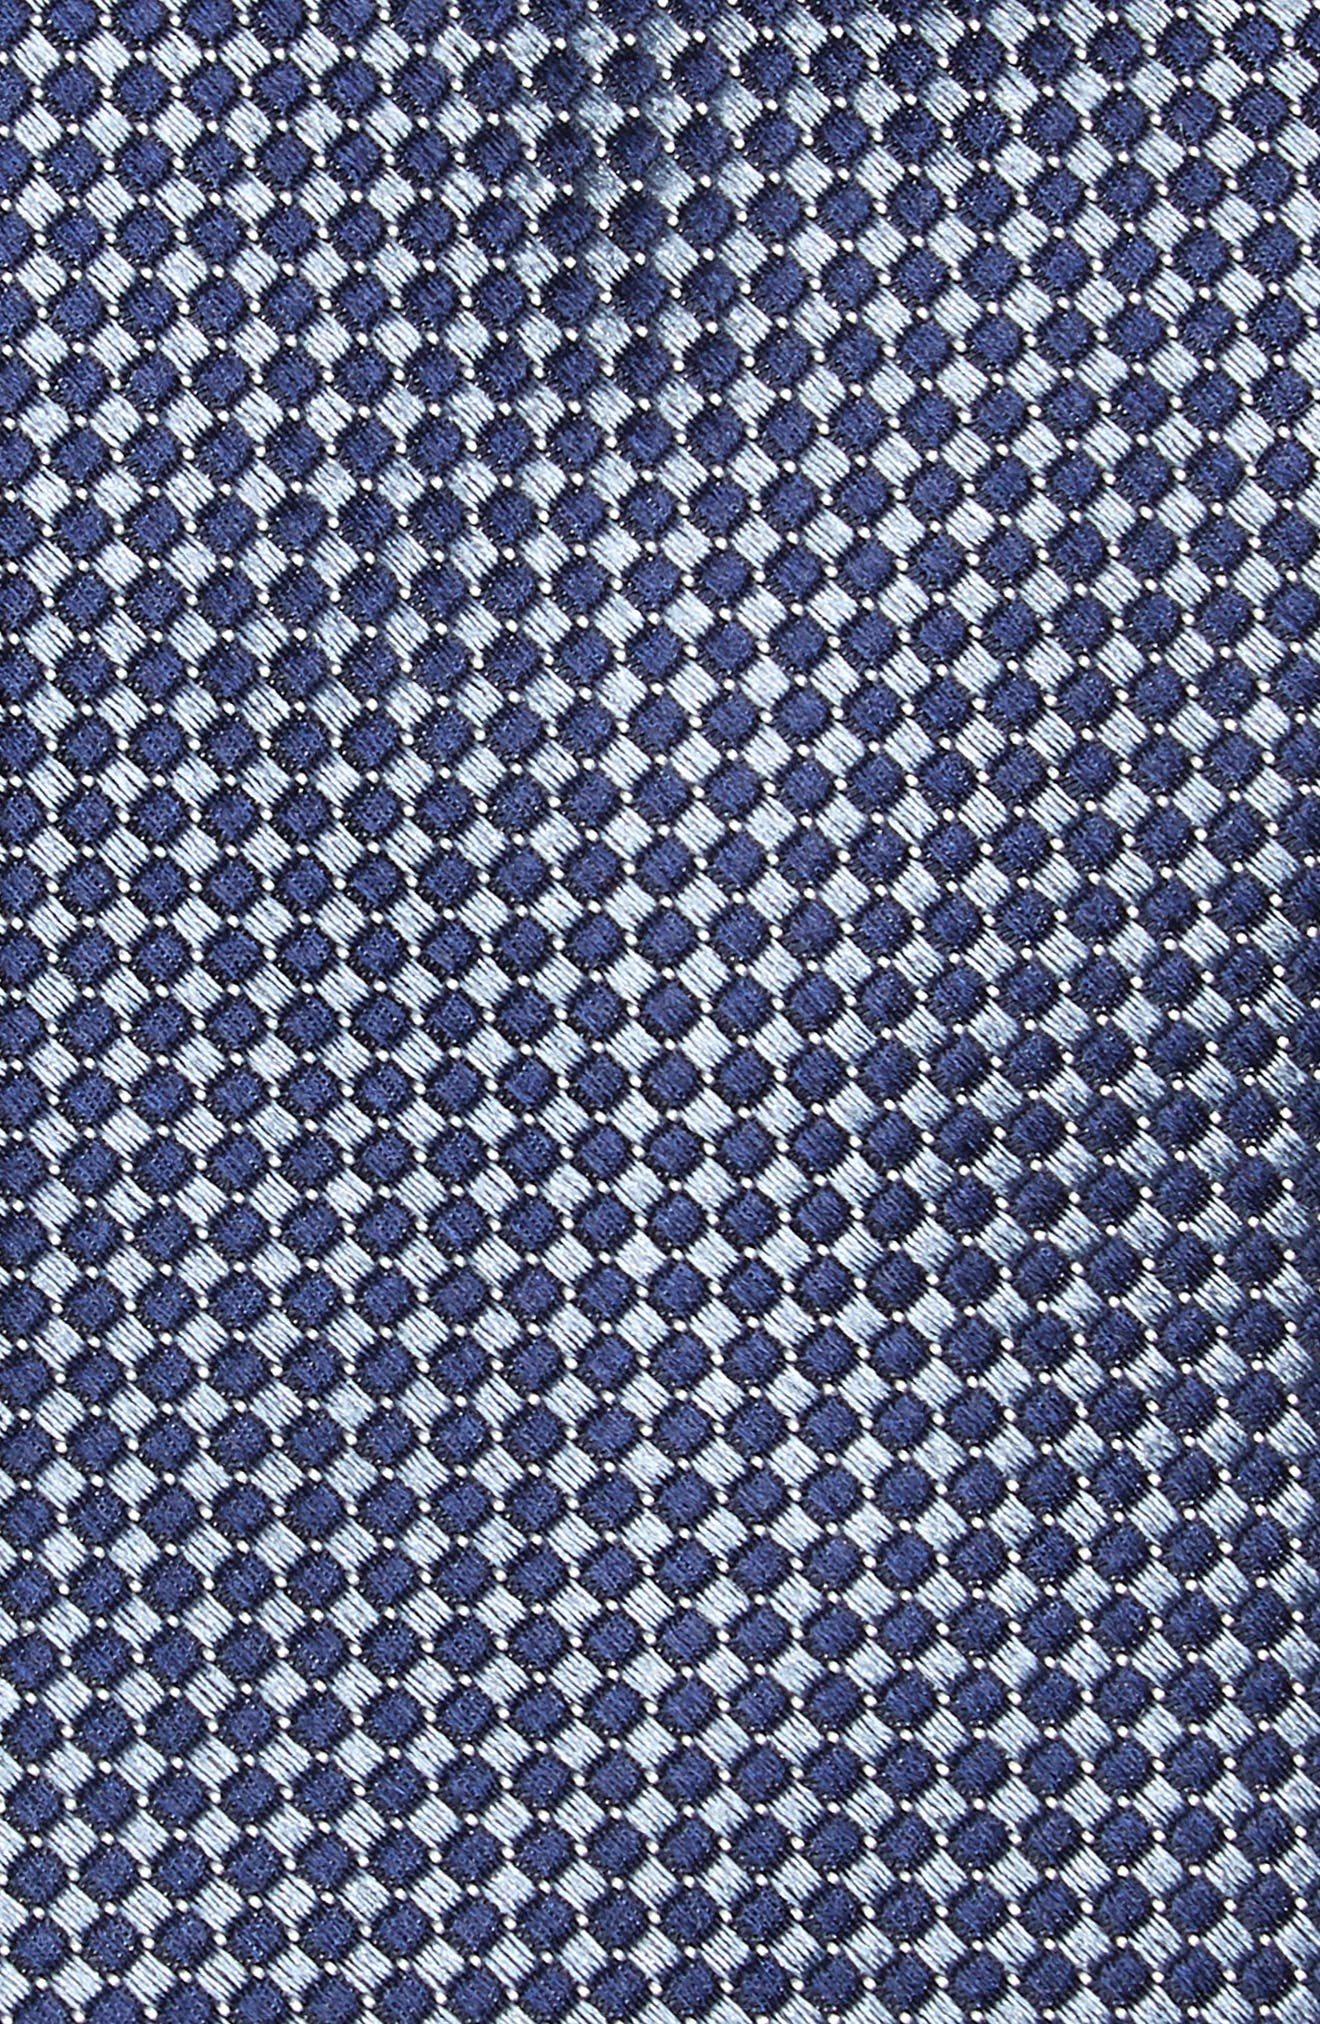 Colombo Silk Tie,                             Alternate thumbnail 2, color,                             BLUE